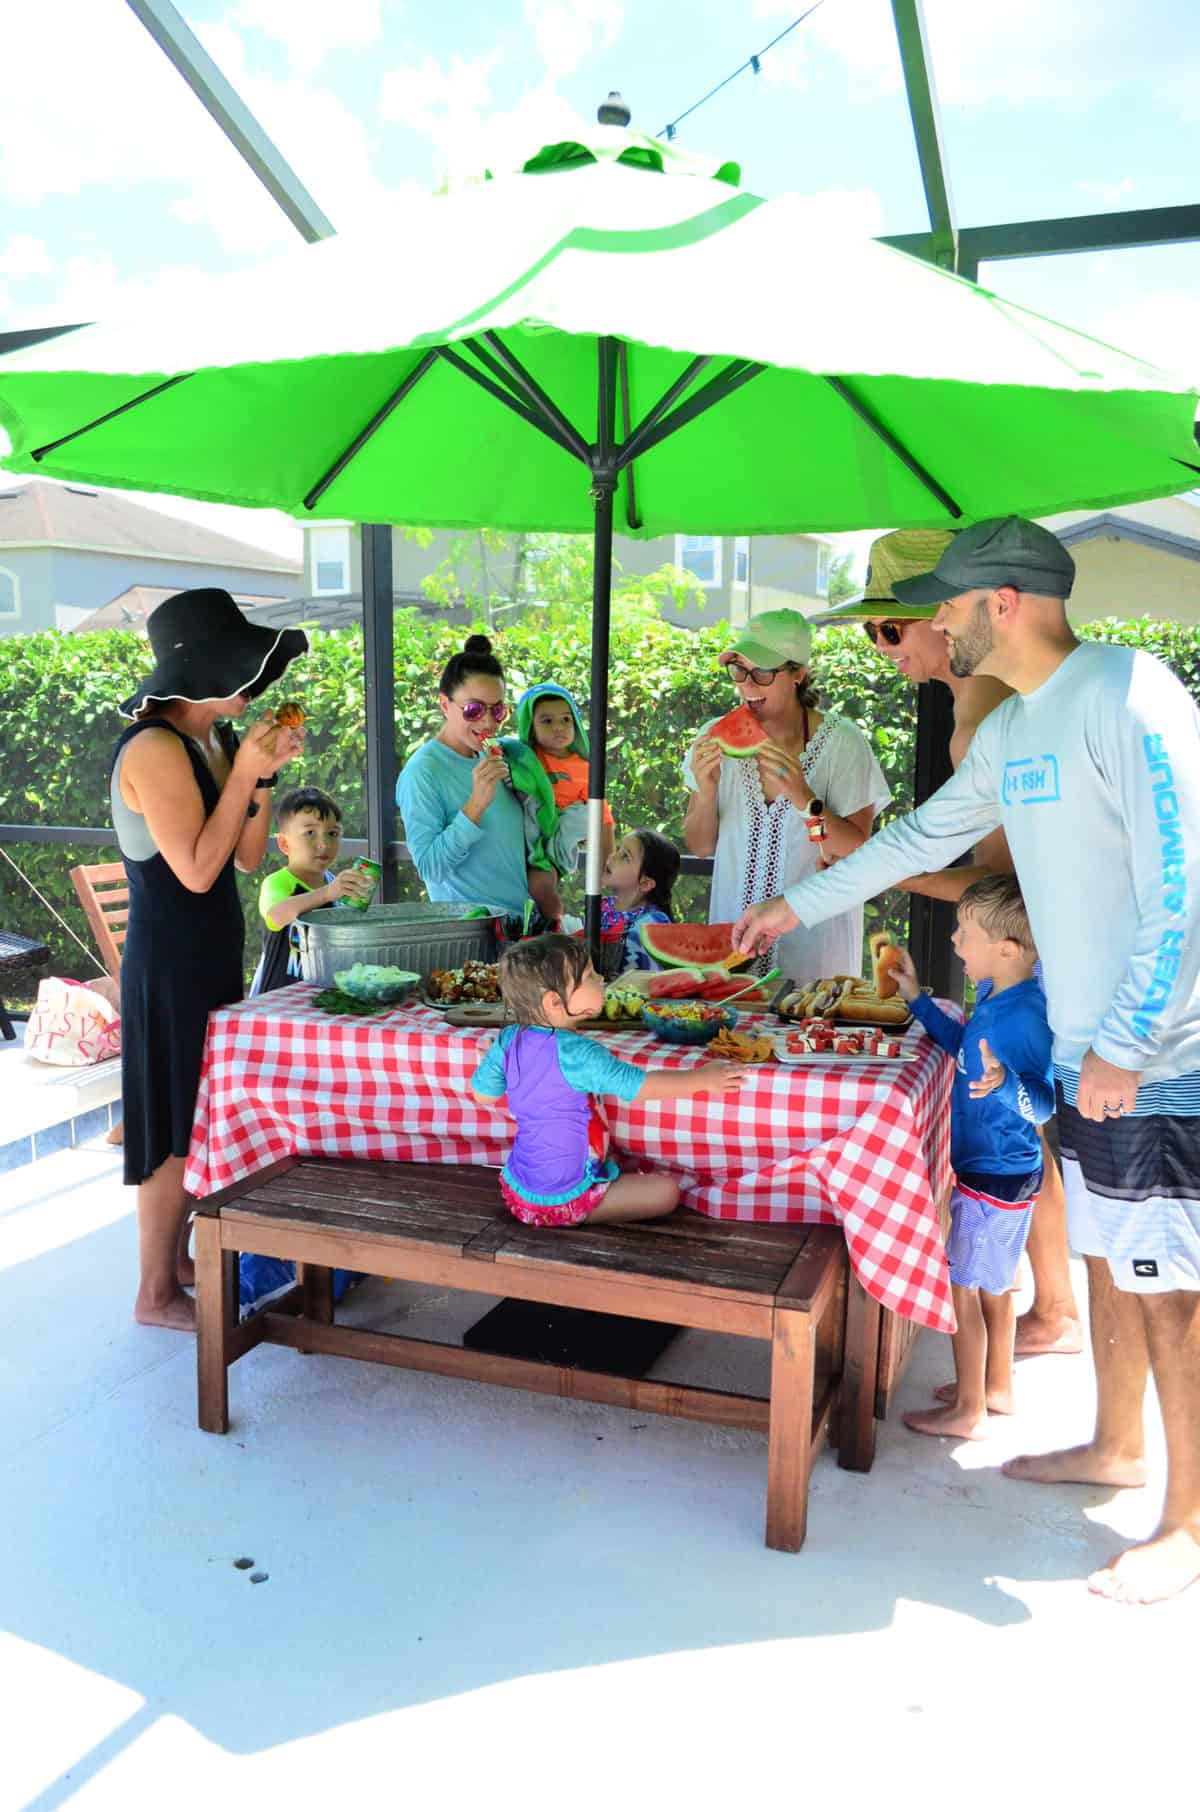 5 adults and 5 kids enjoying snacks around picnic table with red table cloth and green umbrella.